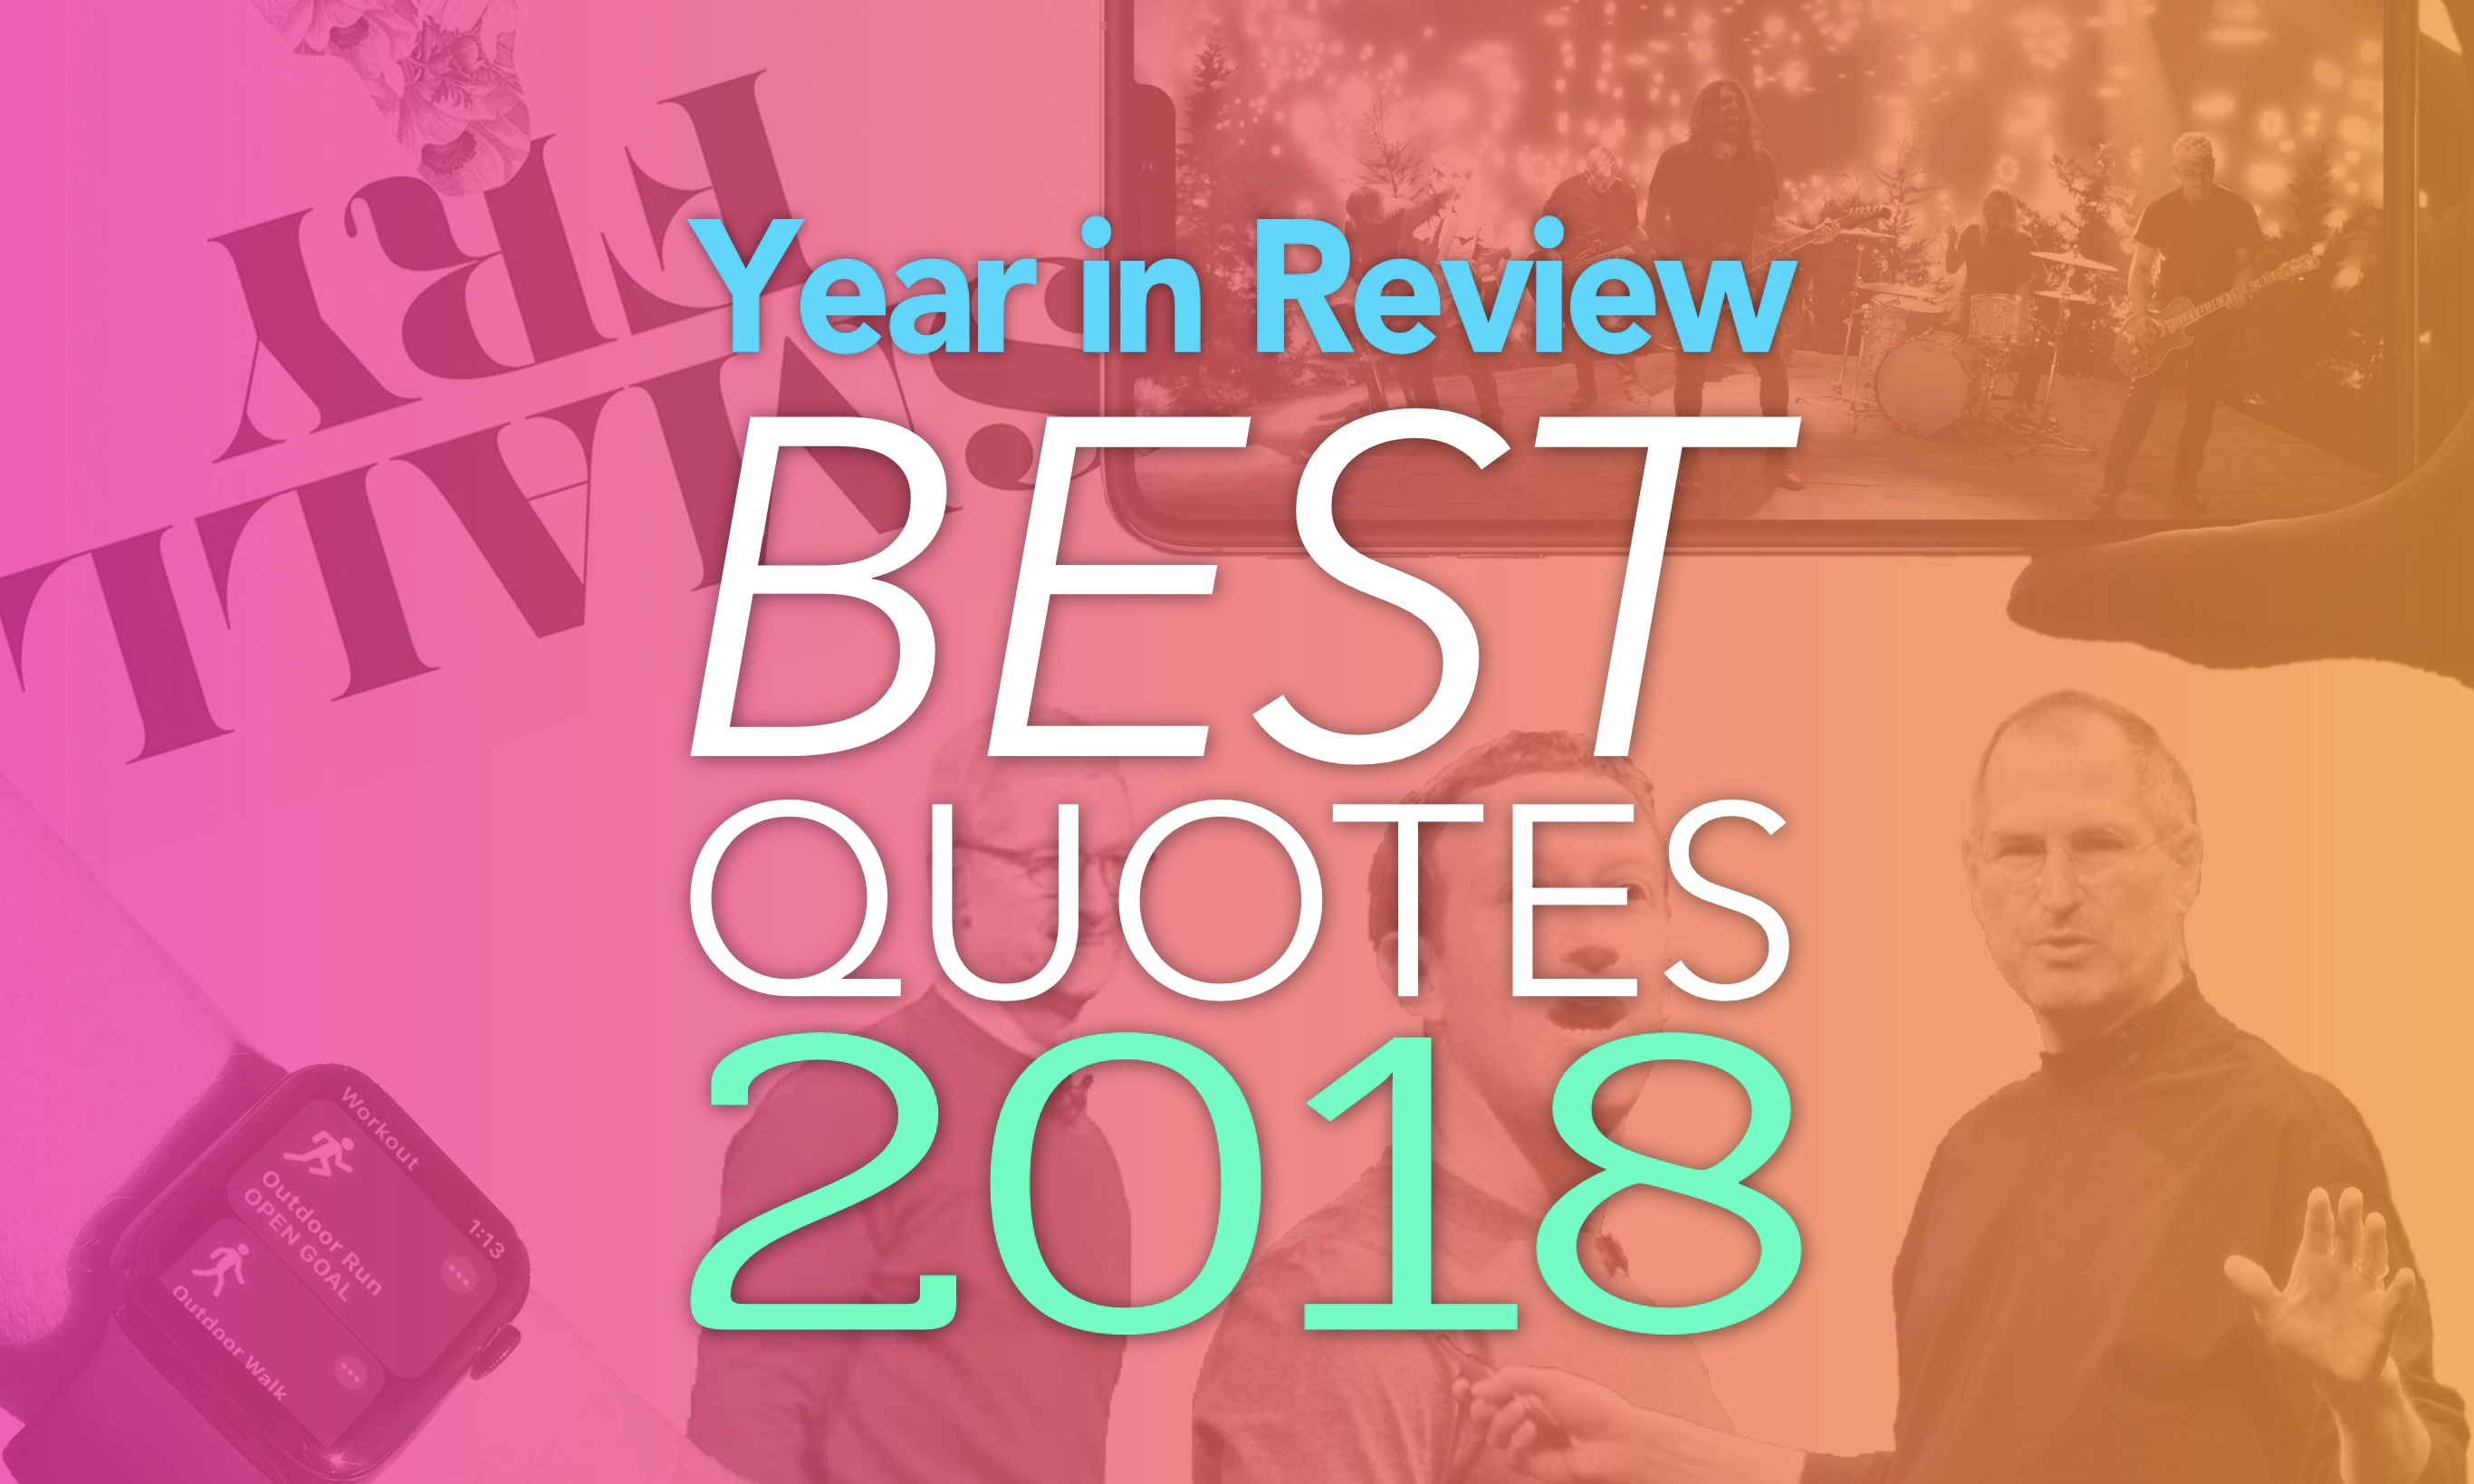 Year in Review: Best Apple quotes 2018: Apple sure fired up the chattering classes in 2018.